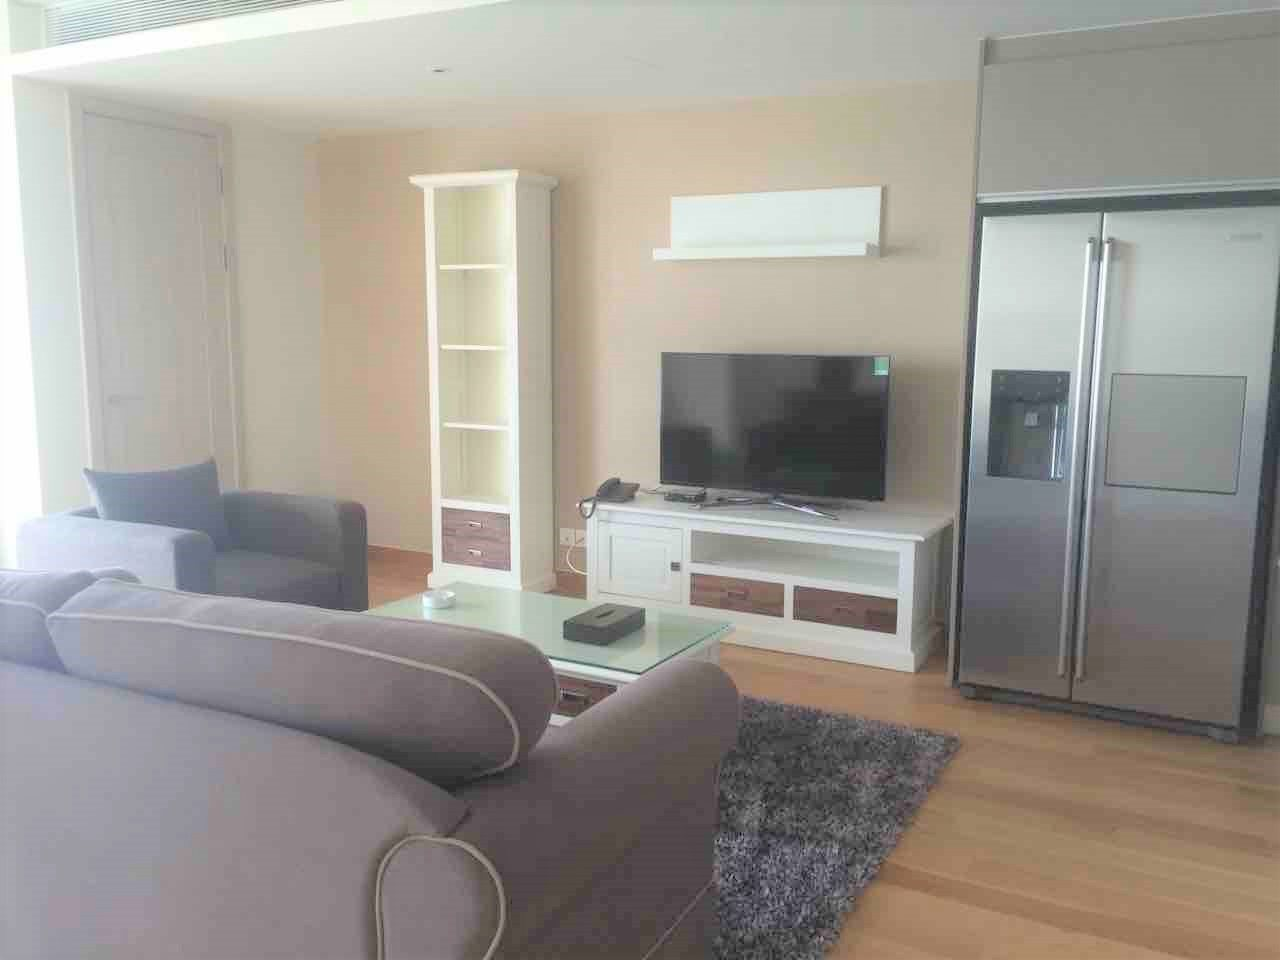 Apartment for rent D210220 (1)